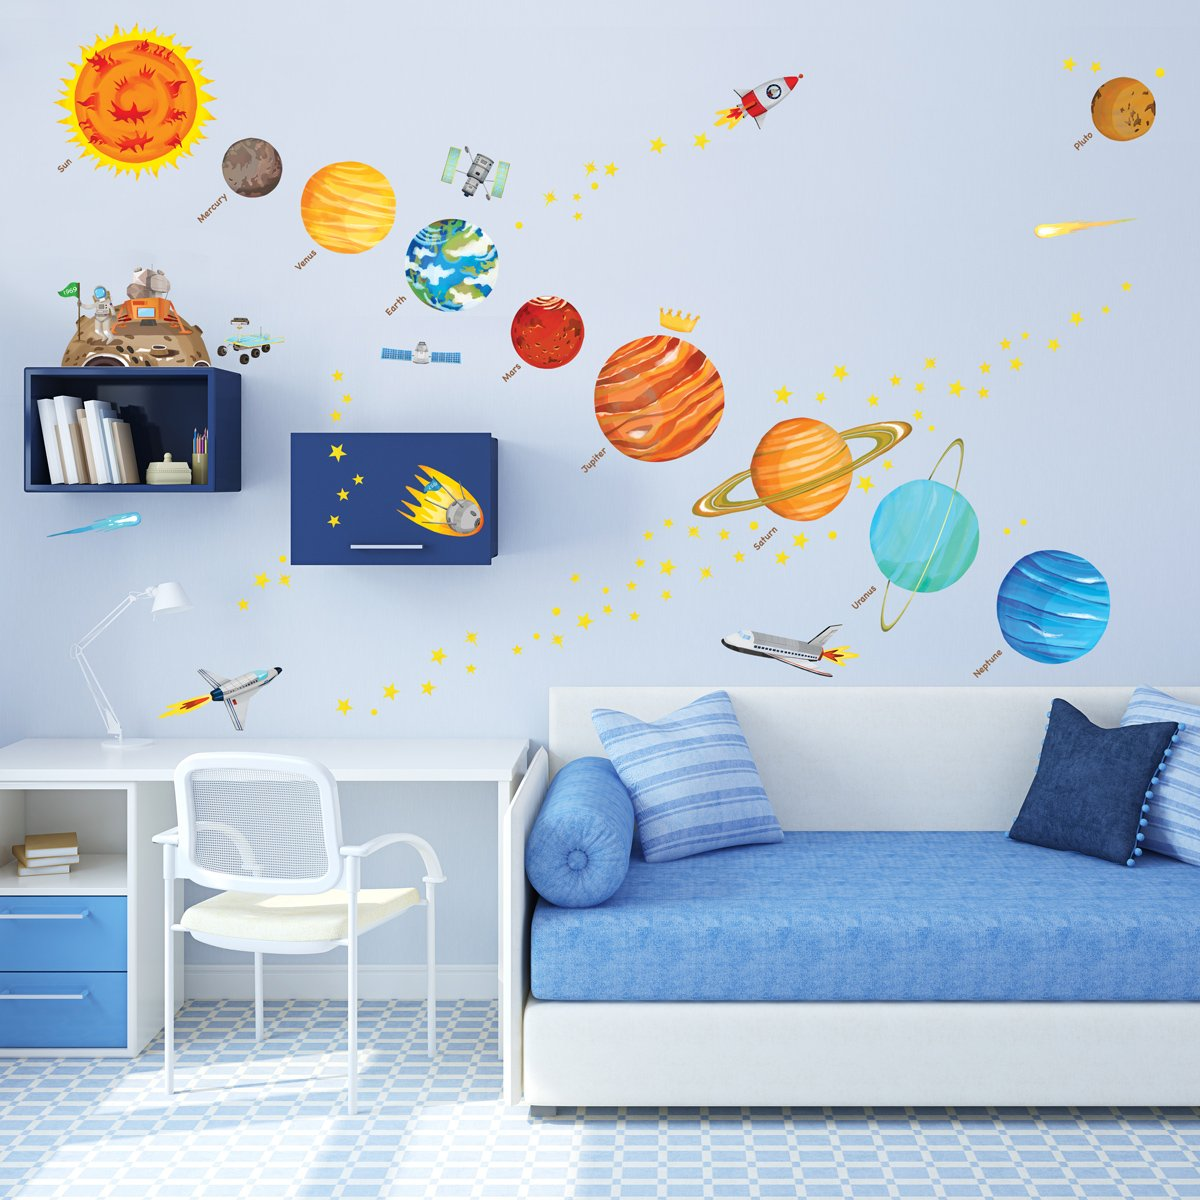 Amazon.com: Decowall DA 1501 The Solar System Kids Wall Stickers Wall Decals  Peel And Stick Removable Wall Stickers For Kids Nursery Bedroom Living Room  ...